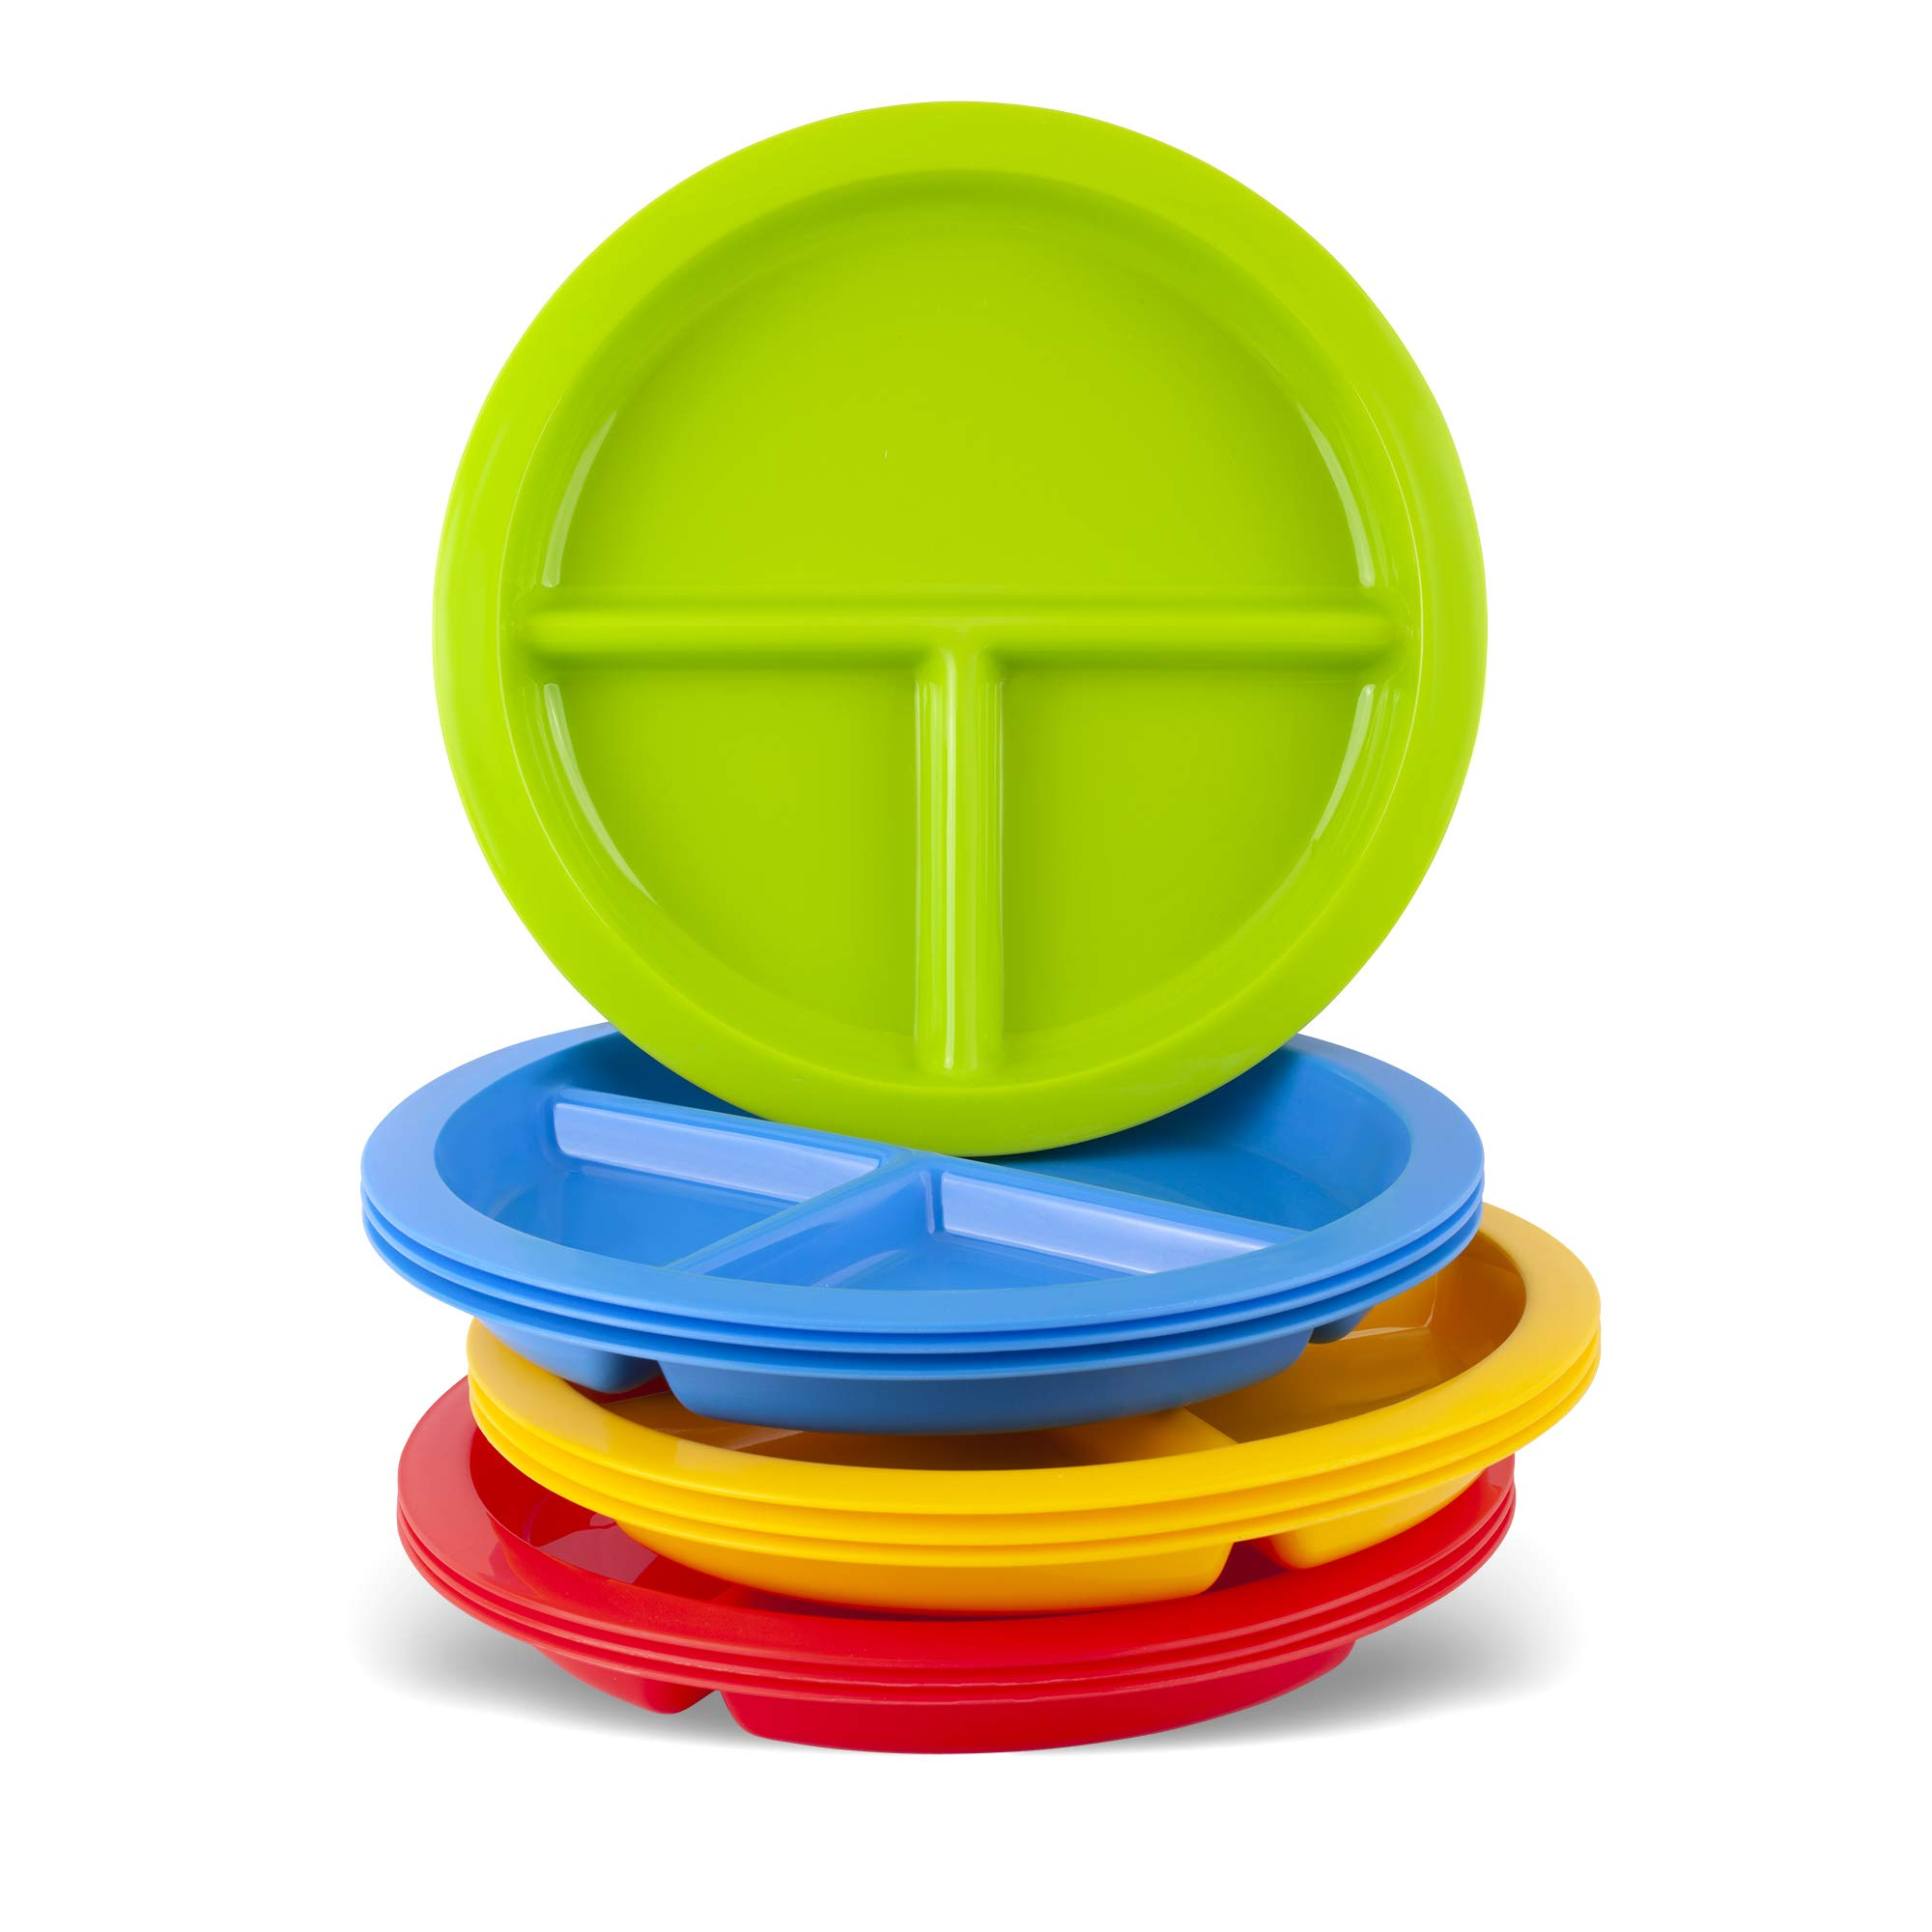 Plaskidy 3 - Compartment Divided Plates for Kids - Set of 12 Plastic Children Trays for Eating with Dividers - 4 Bright Colors (3 of Each Color) Dishwasher Microwave Safe BPA Free for Toddler and Kids